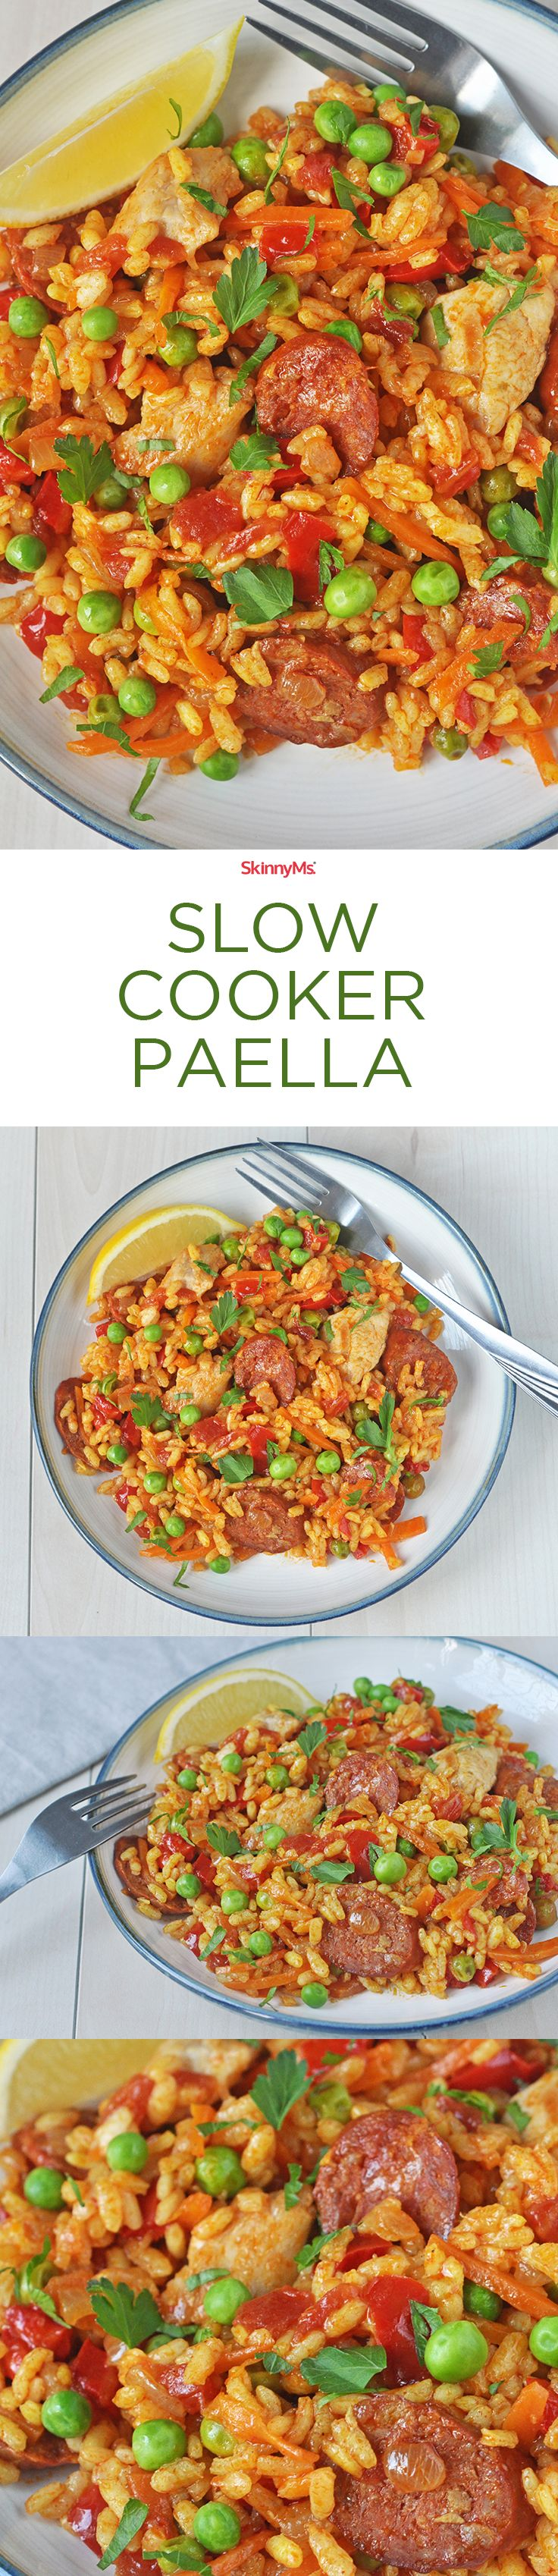 The search for great tasting paella is over! | Slow Cooker Paella (Slow Cooker Lunch Recipes)